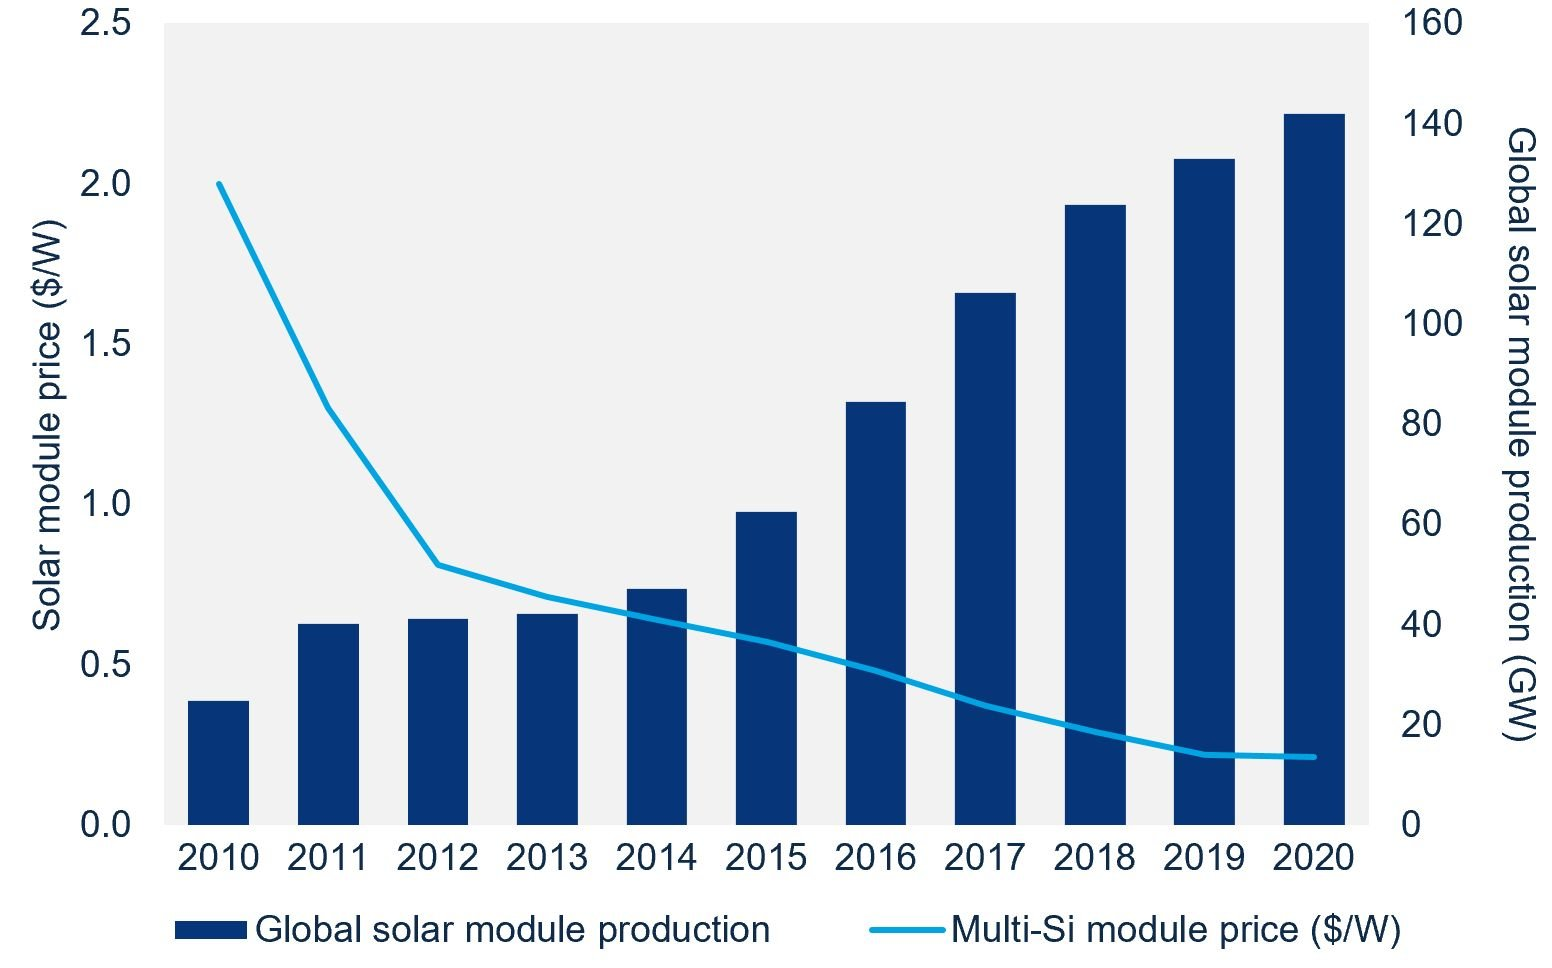 Chart showing multi-si module price decline as global solar production ramps up to 140 GW by 2020